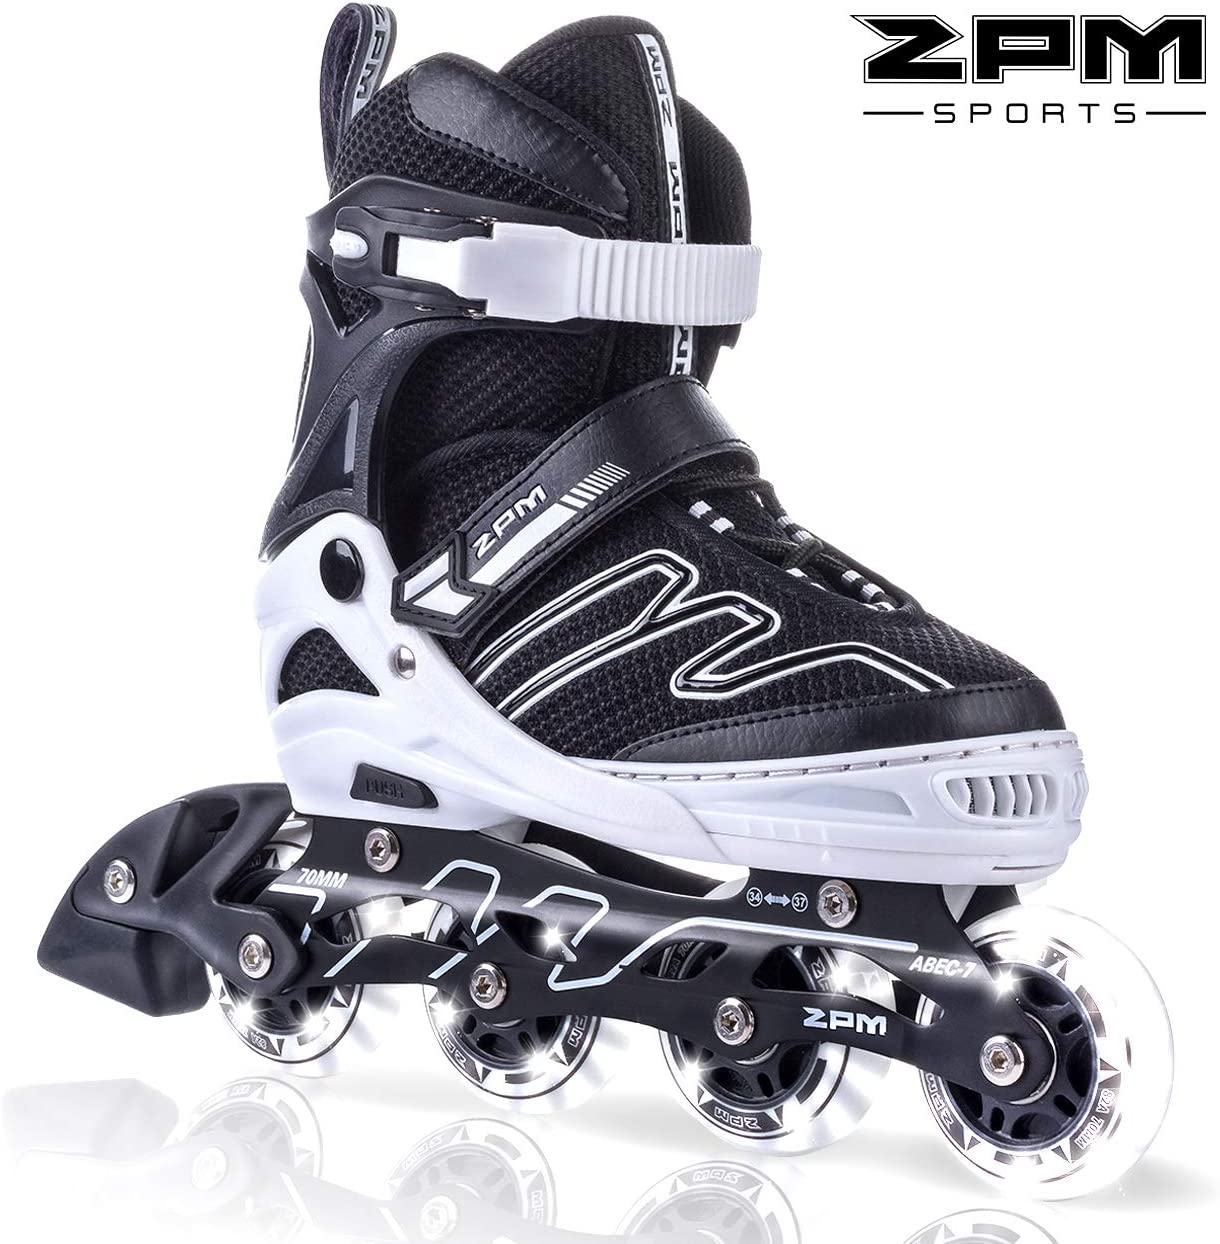 2PM SPORTS Exthrax Kids Adjustable Inline Skates with Light up Wheels, Fun Flashing Illuminating Roller Skates for Boys Girls, Men and Ladies